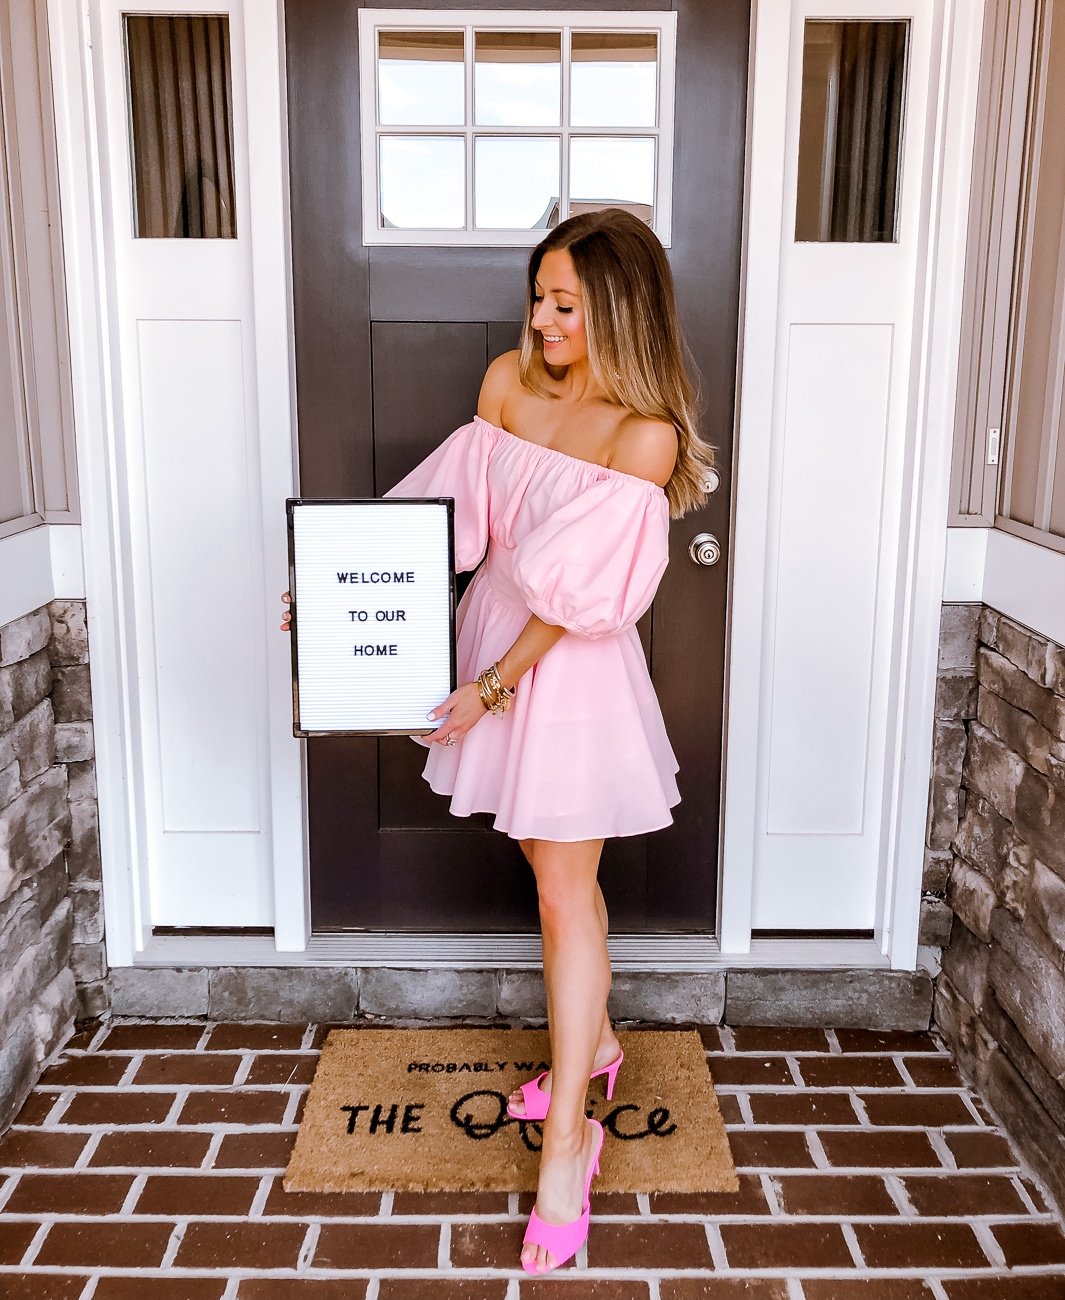 j.ing pink off the shoulder dress